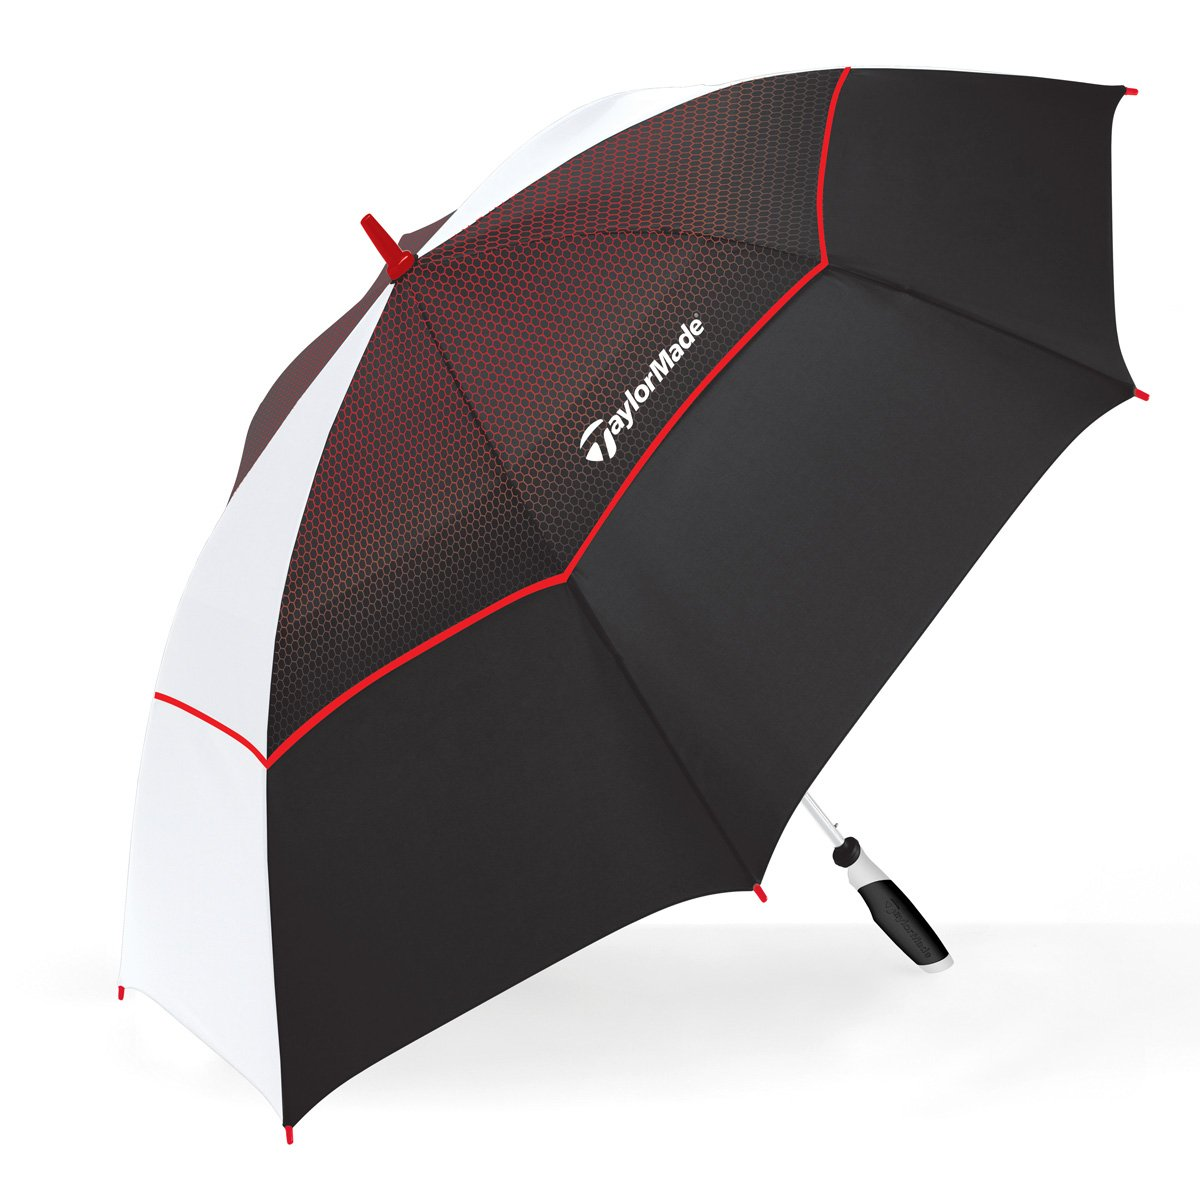 ShedRain® TaylorMade Co-Branded Vented Golf Umbrella: Black and White w/Red Trim